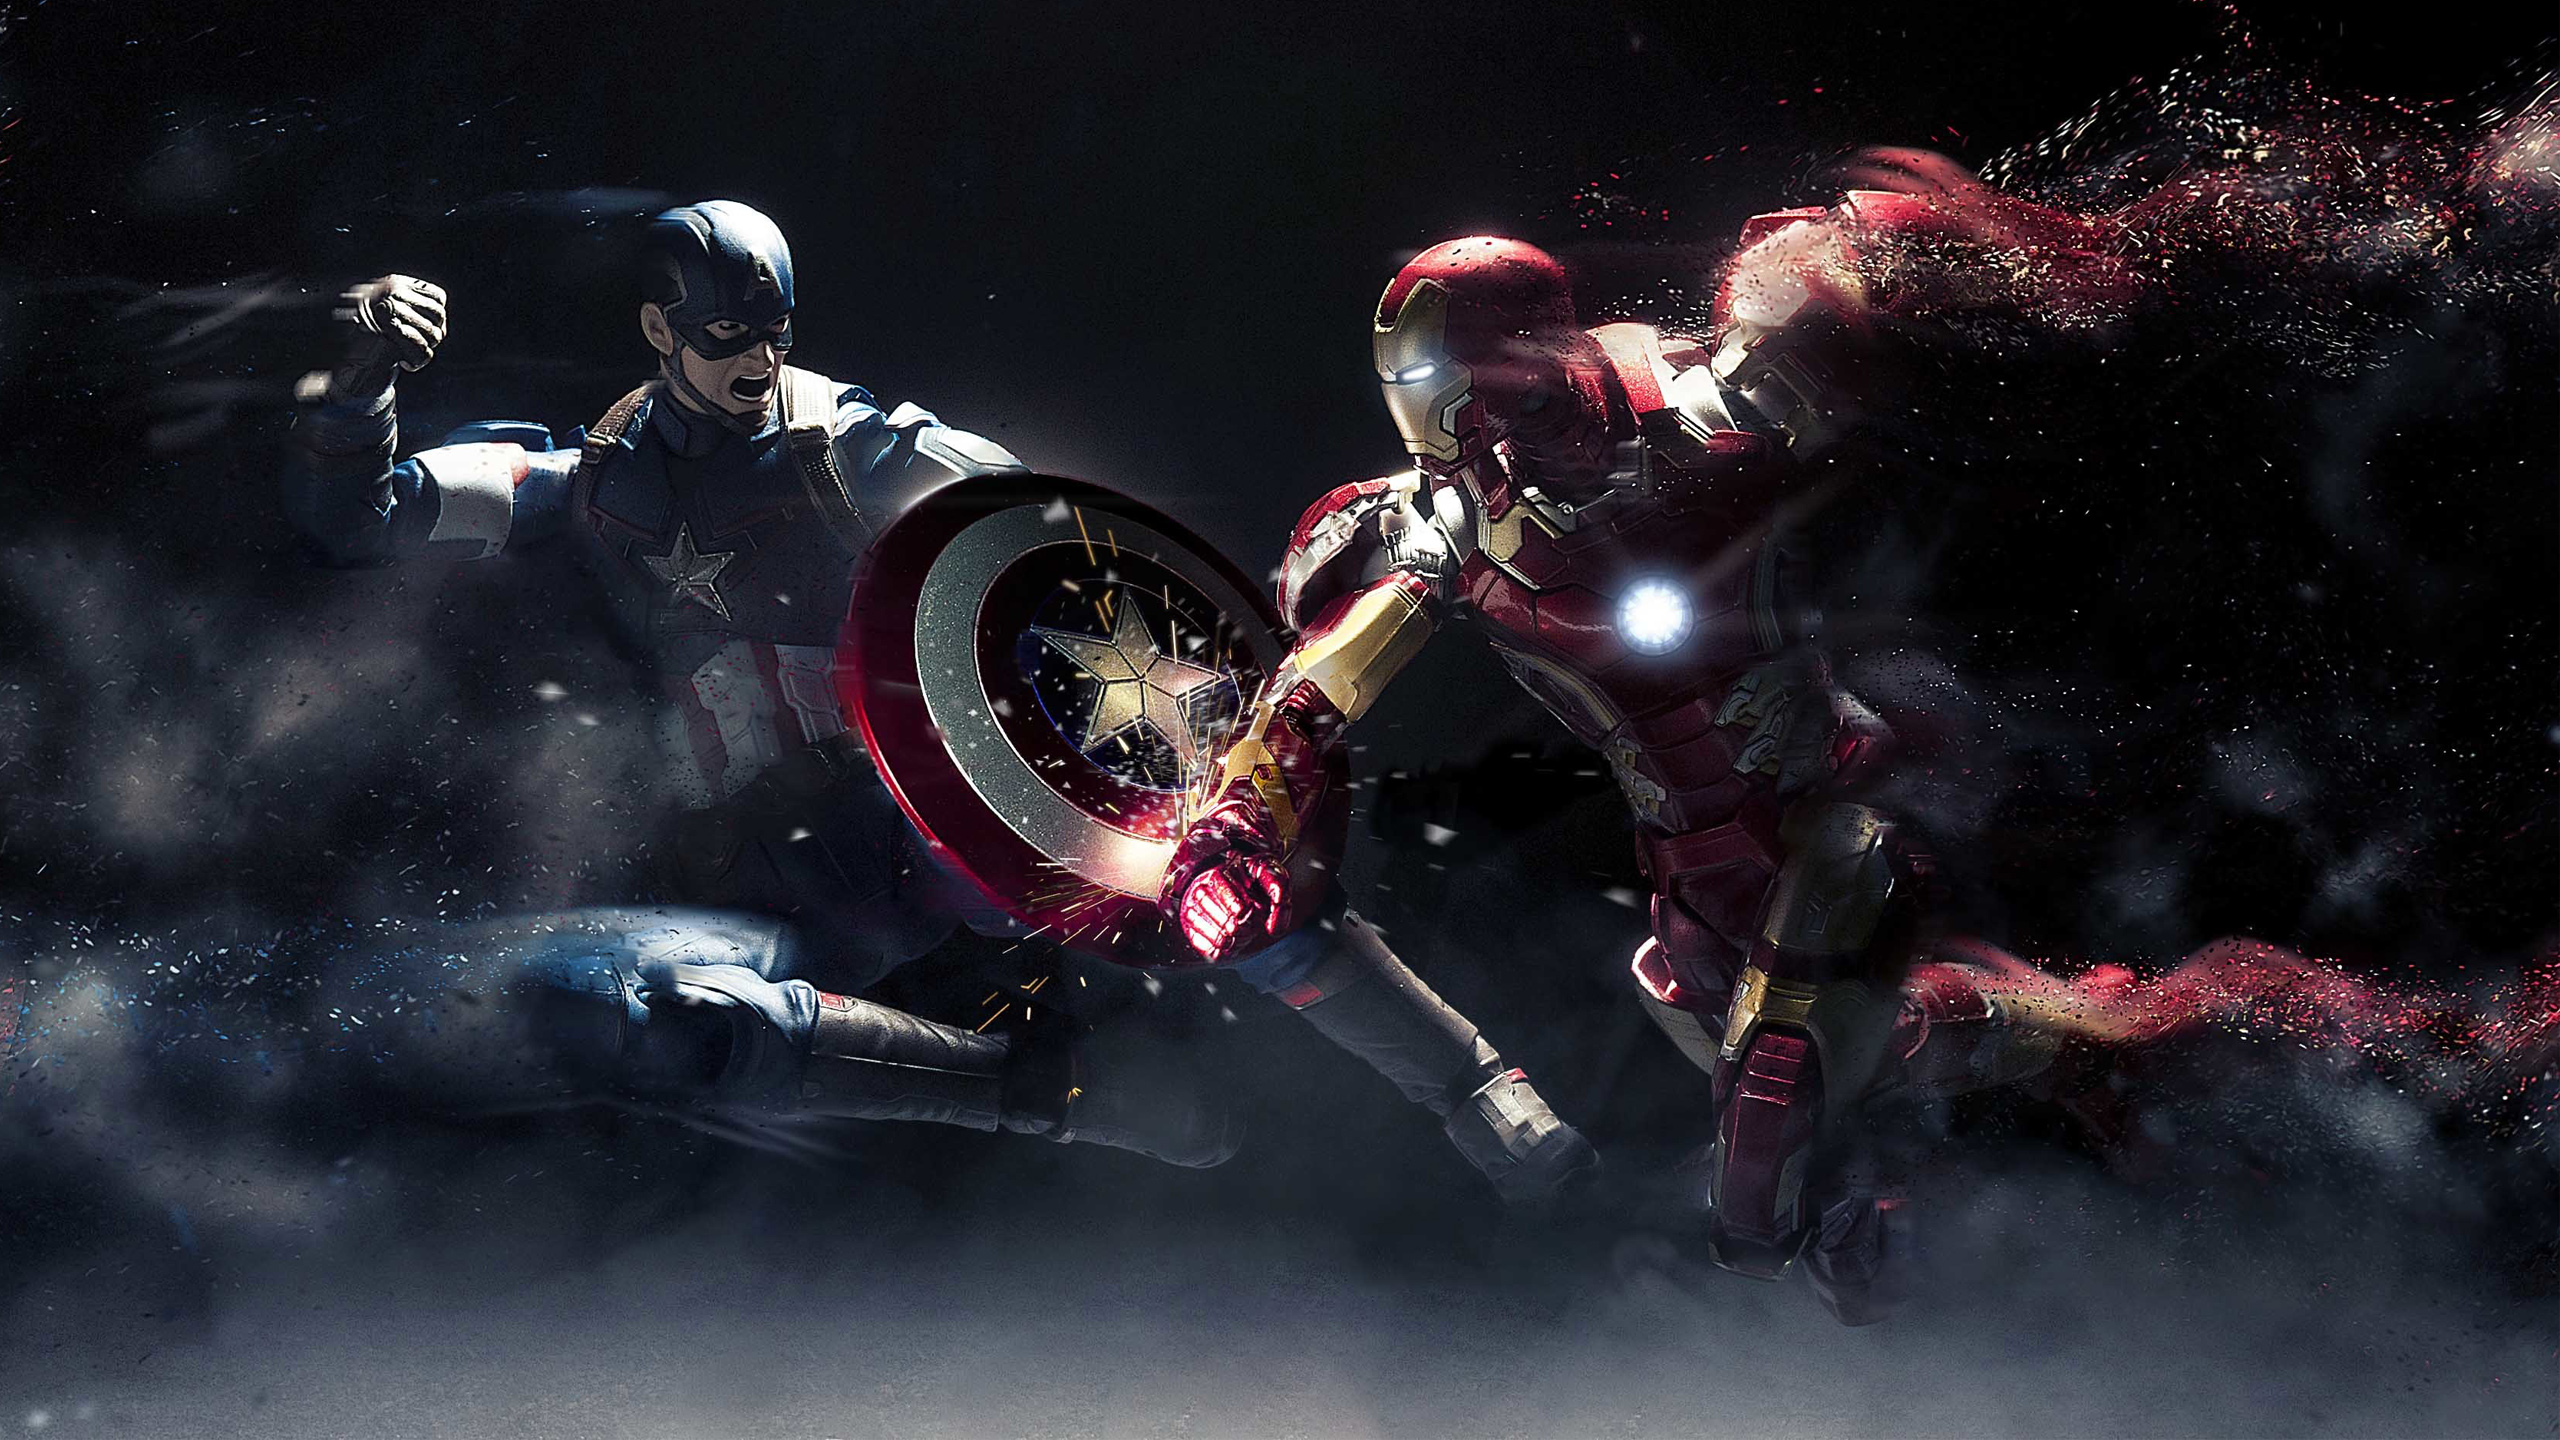 captain america vs iron man wallpaper  86 Captain America: Civil War HD Wallpapers | Background Images ...